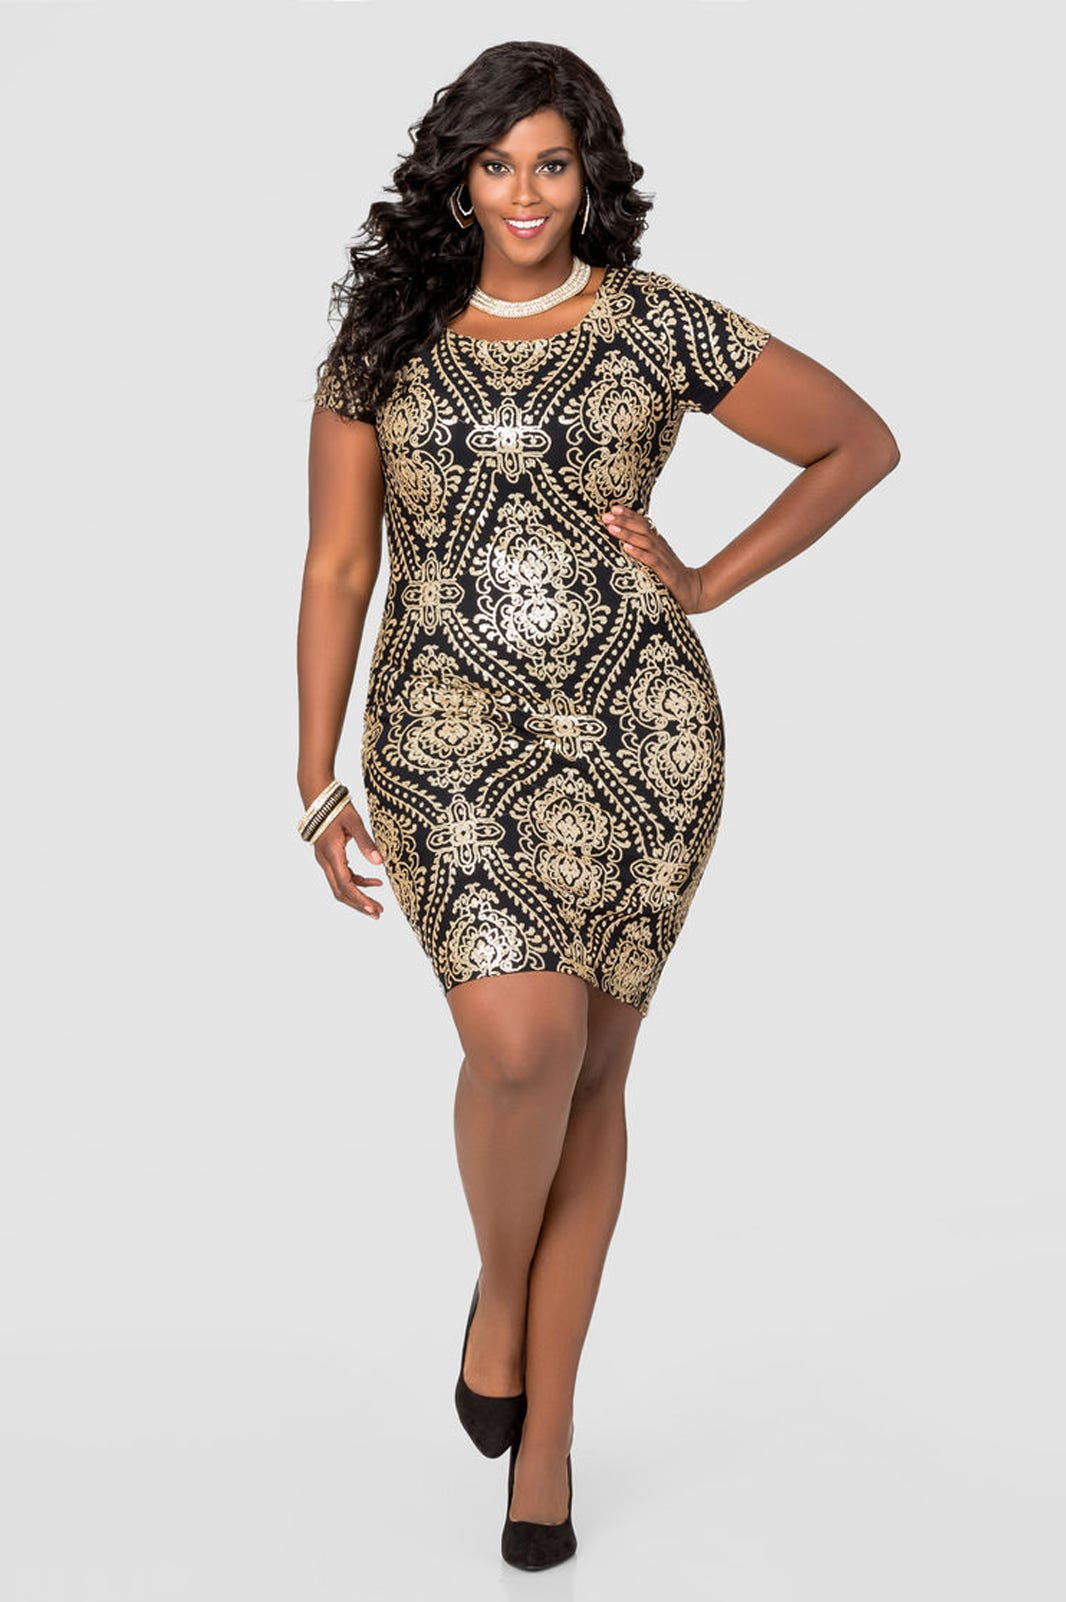 abf02ad243e Plus Size Dresses Holiday Outfits